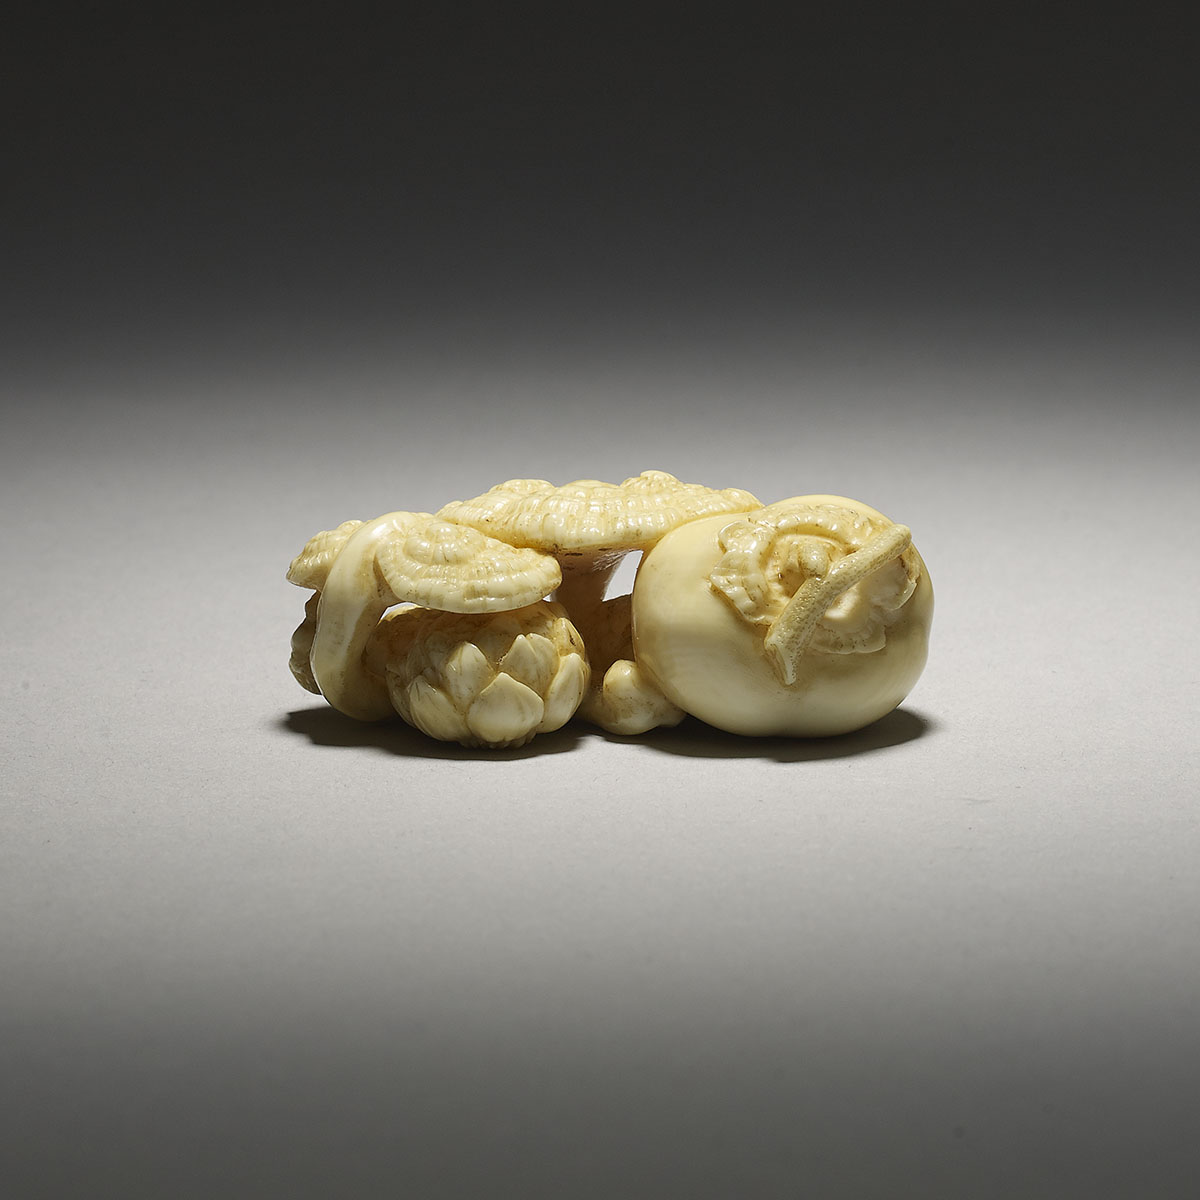 Ivory netsuke of Kaki, reishi and lily bulbs, Tetsugendo Kyusai,MR3092_v3